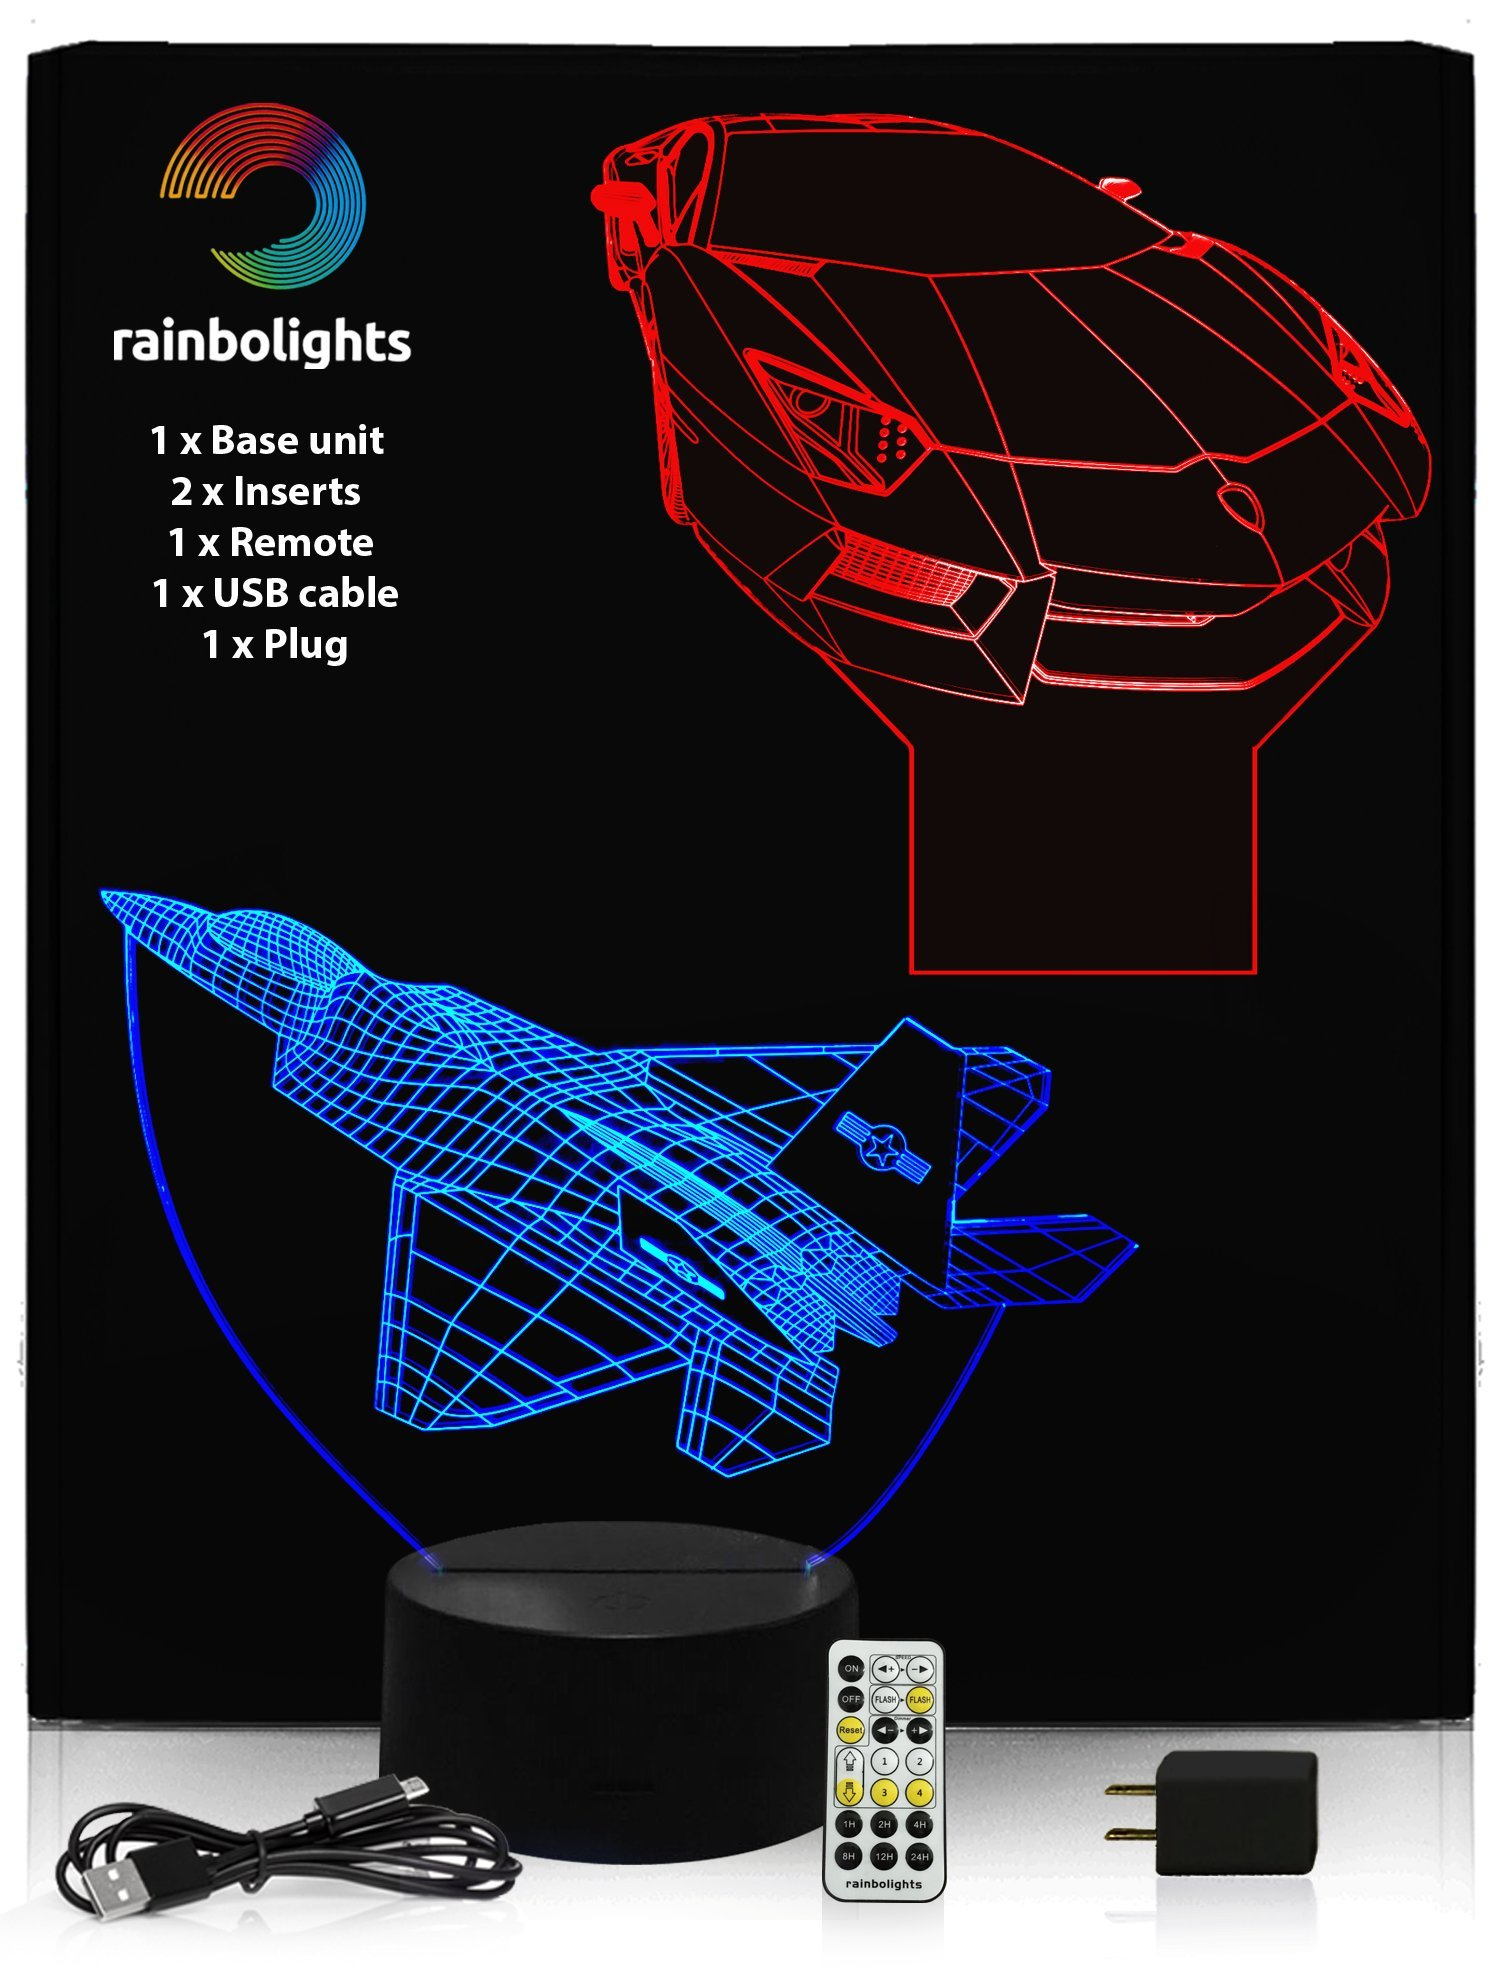 BIRTHDAYS GIFTS FOR BOYS 3D Illusion Night Light Desk Lamp 7 color (2 Designs PLANE & CAR) with REMOTE CONTROL inc Dimmer With Mains Plug A LAMPS FOR THE BEDROOM ILLUSION NIGHTLIGHT by rainbolights